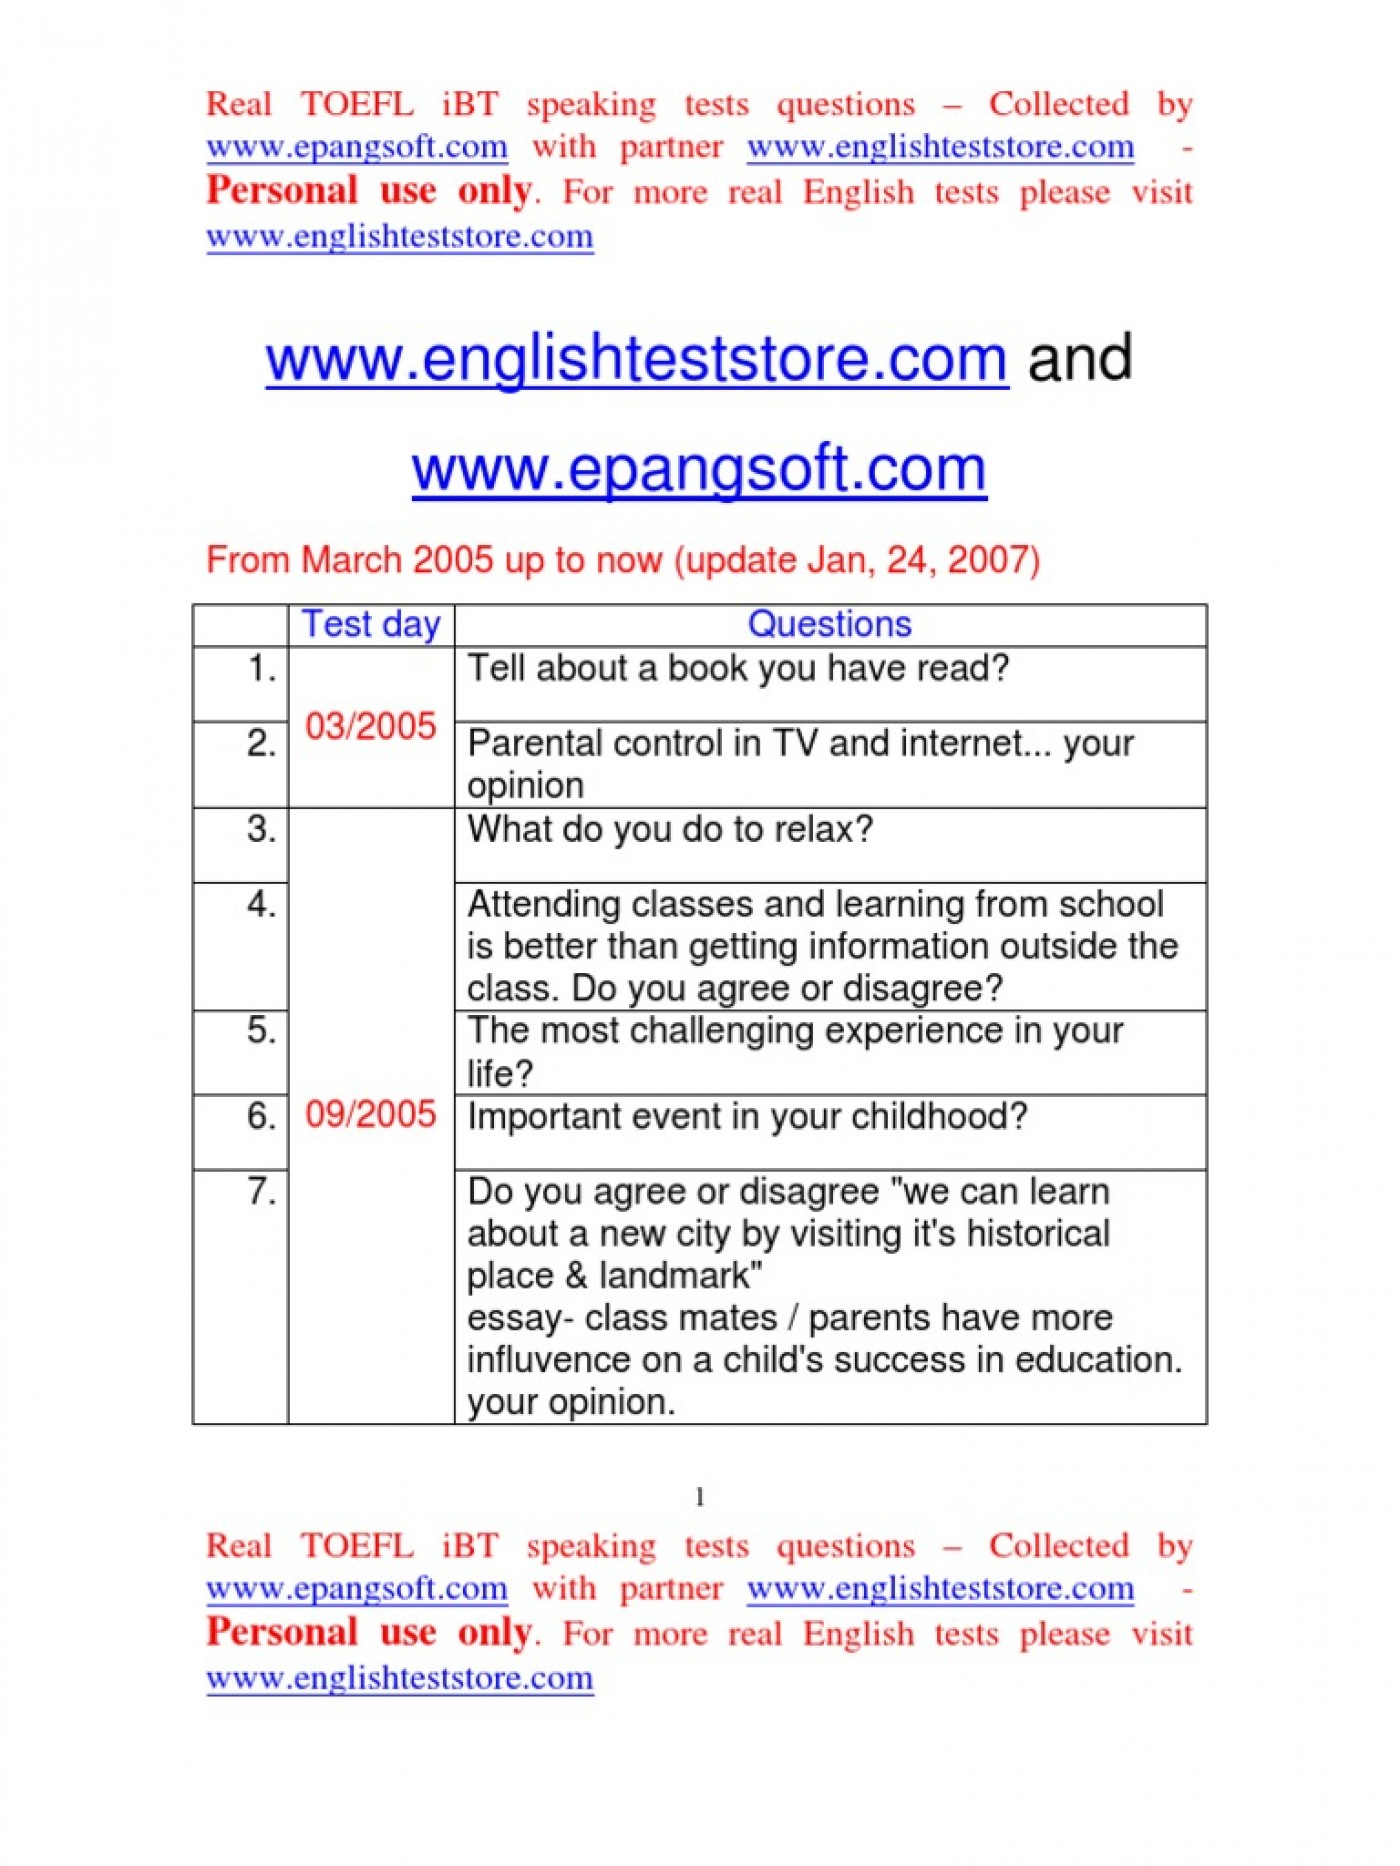 009 Essay Example Toefl Topic Preparat Oacute Rio Nashville Docshare Tips Real Ibt Speaking Test Questions From March  58517c54b6d87f49628 Taking For Topics Striking 20151400